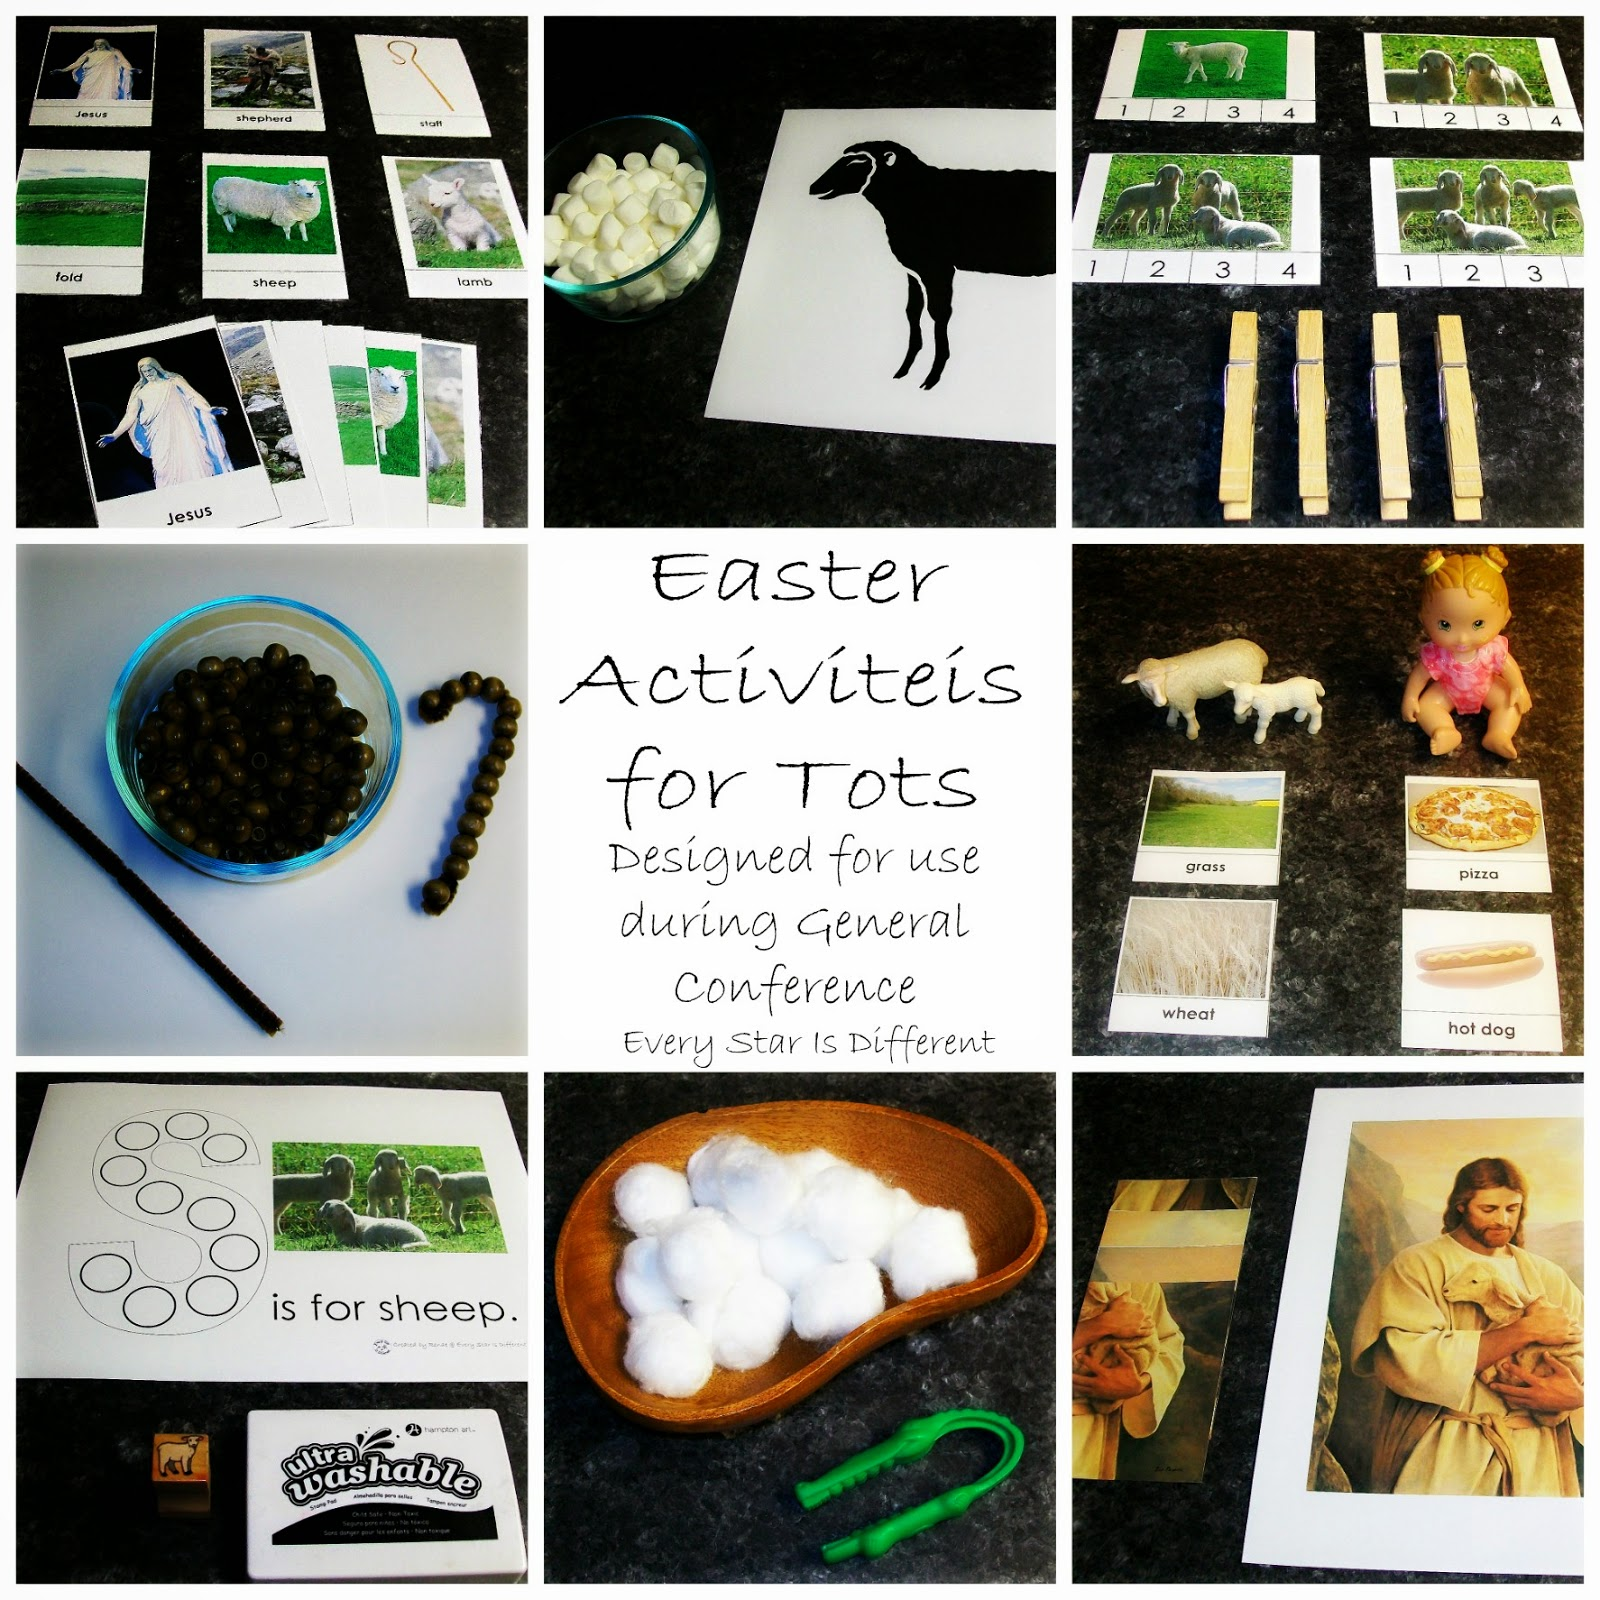 Easter Activities for Tots